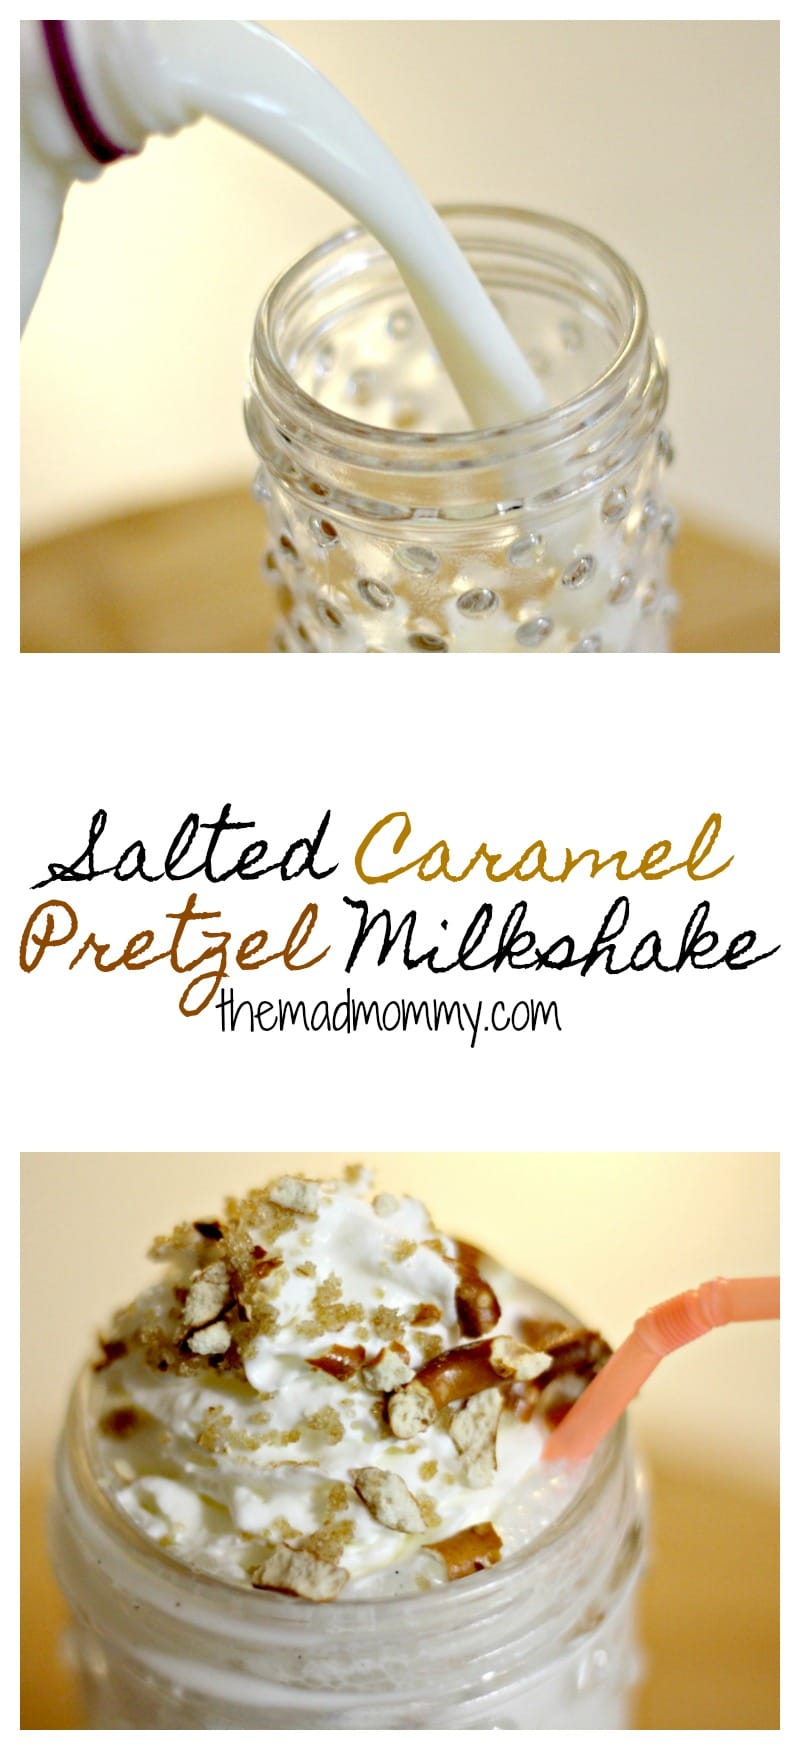 This Salted Caramel Pretzel milkshake is just as delicious and refreshing, as it is beautiful! #Sponsored #MilkTheRealStory